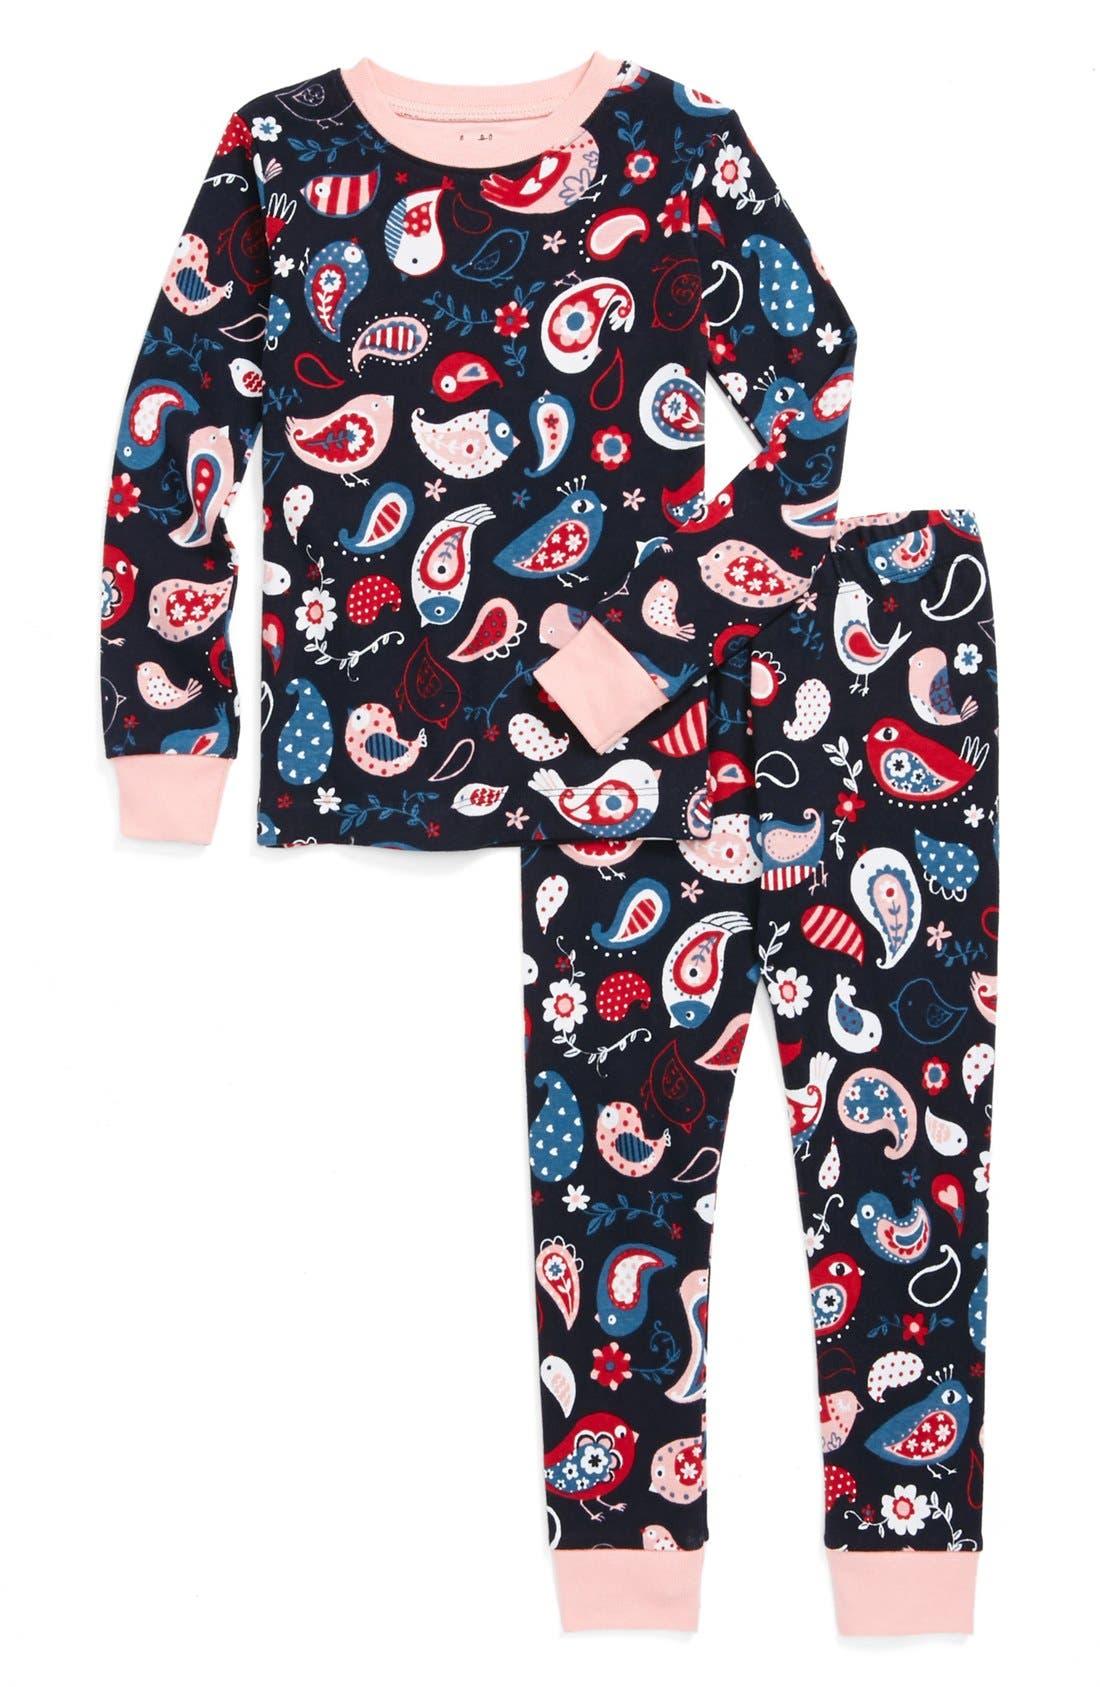 Alternate Image 1 Selected - Hatley 'Paisley Birds' Two-Piece Fitted Pajamas (Toddler Girls)